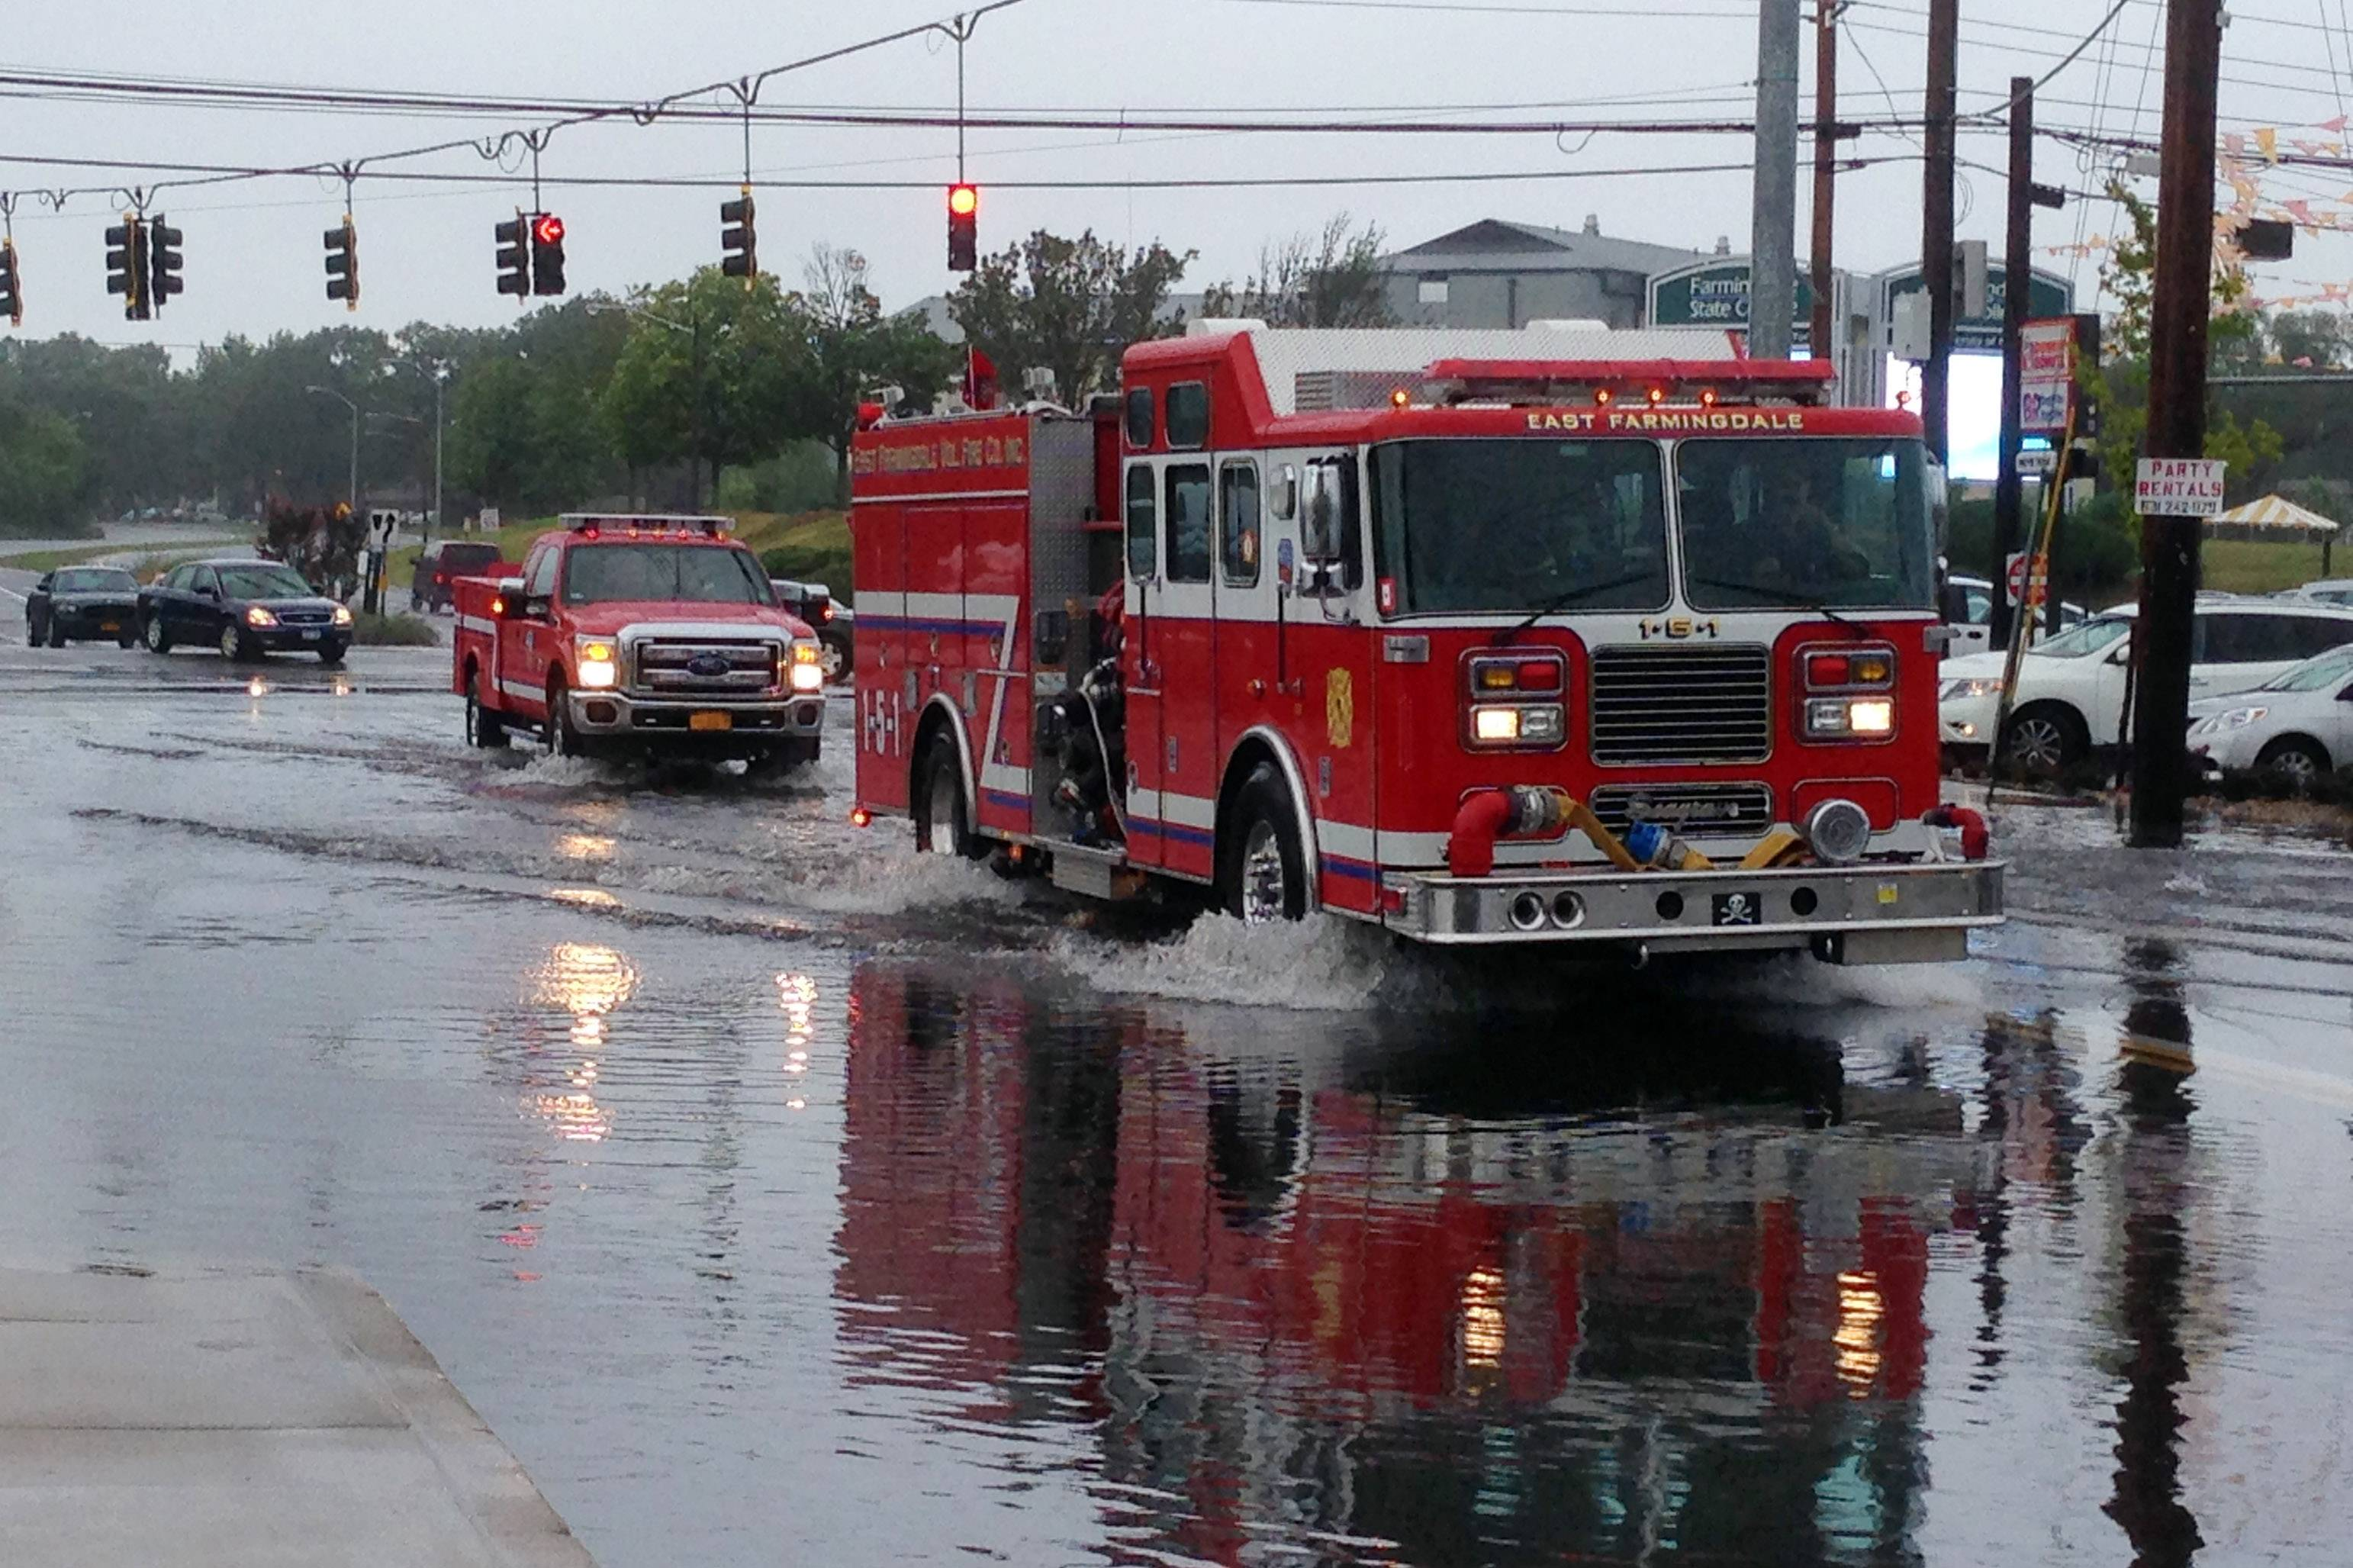 Firefighters cross a flooded intersection on Route 110 in Farmingdale, N.Y., on New York's Long Island, Wednesday, Aug. 13, 2014. Stranded Long Island drivers have been rescued after a storm slammed Islip, N.Y., with over 12 inches of rain — an entire summer's worth.